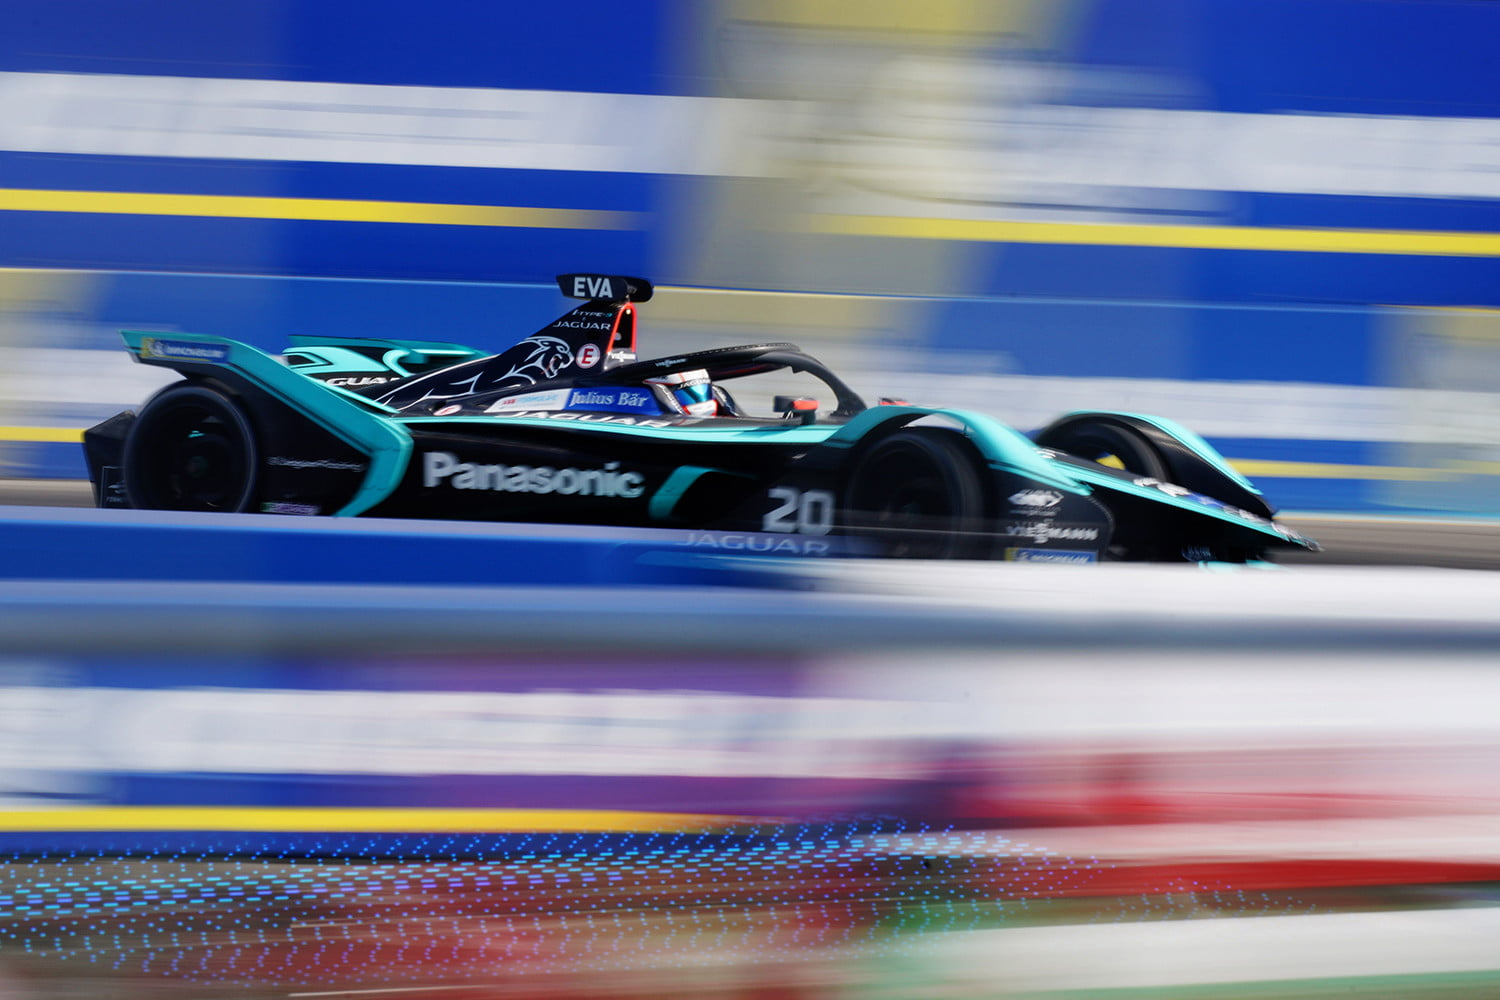 Formula E races aren't just exciting, they're driving EV tech into the future